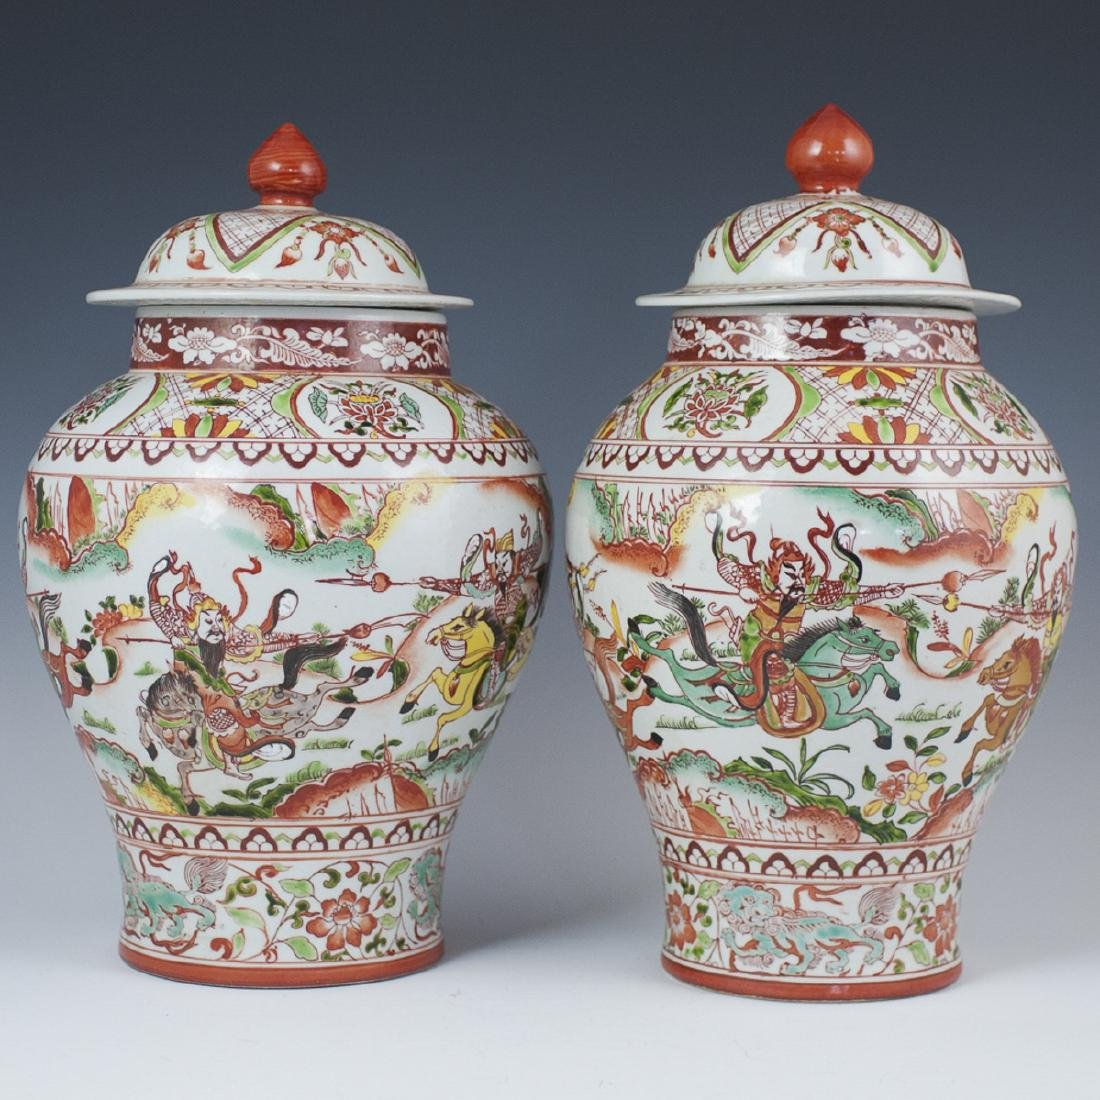 Antique Chinese Wucai Enameled Urns